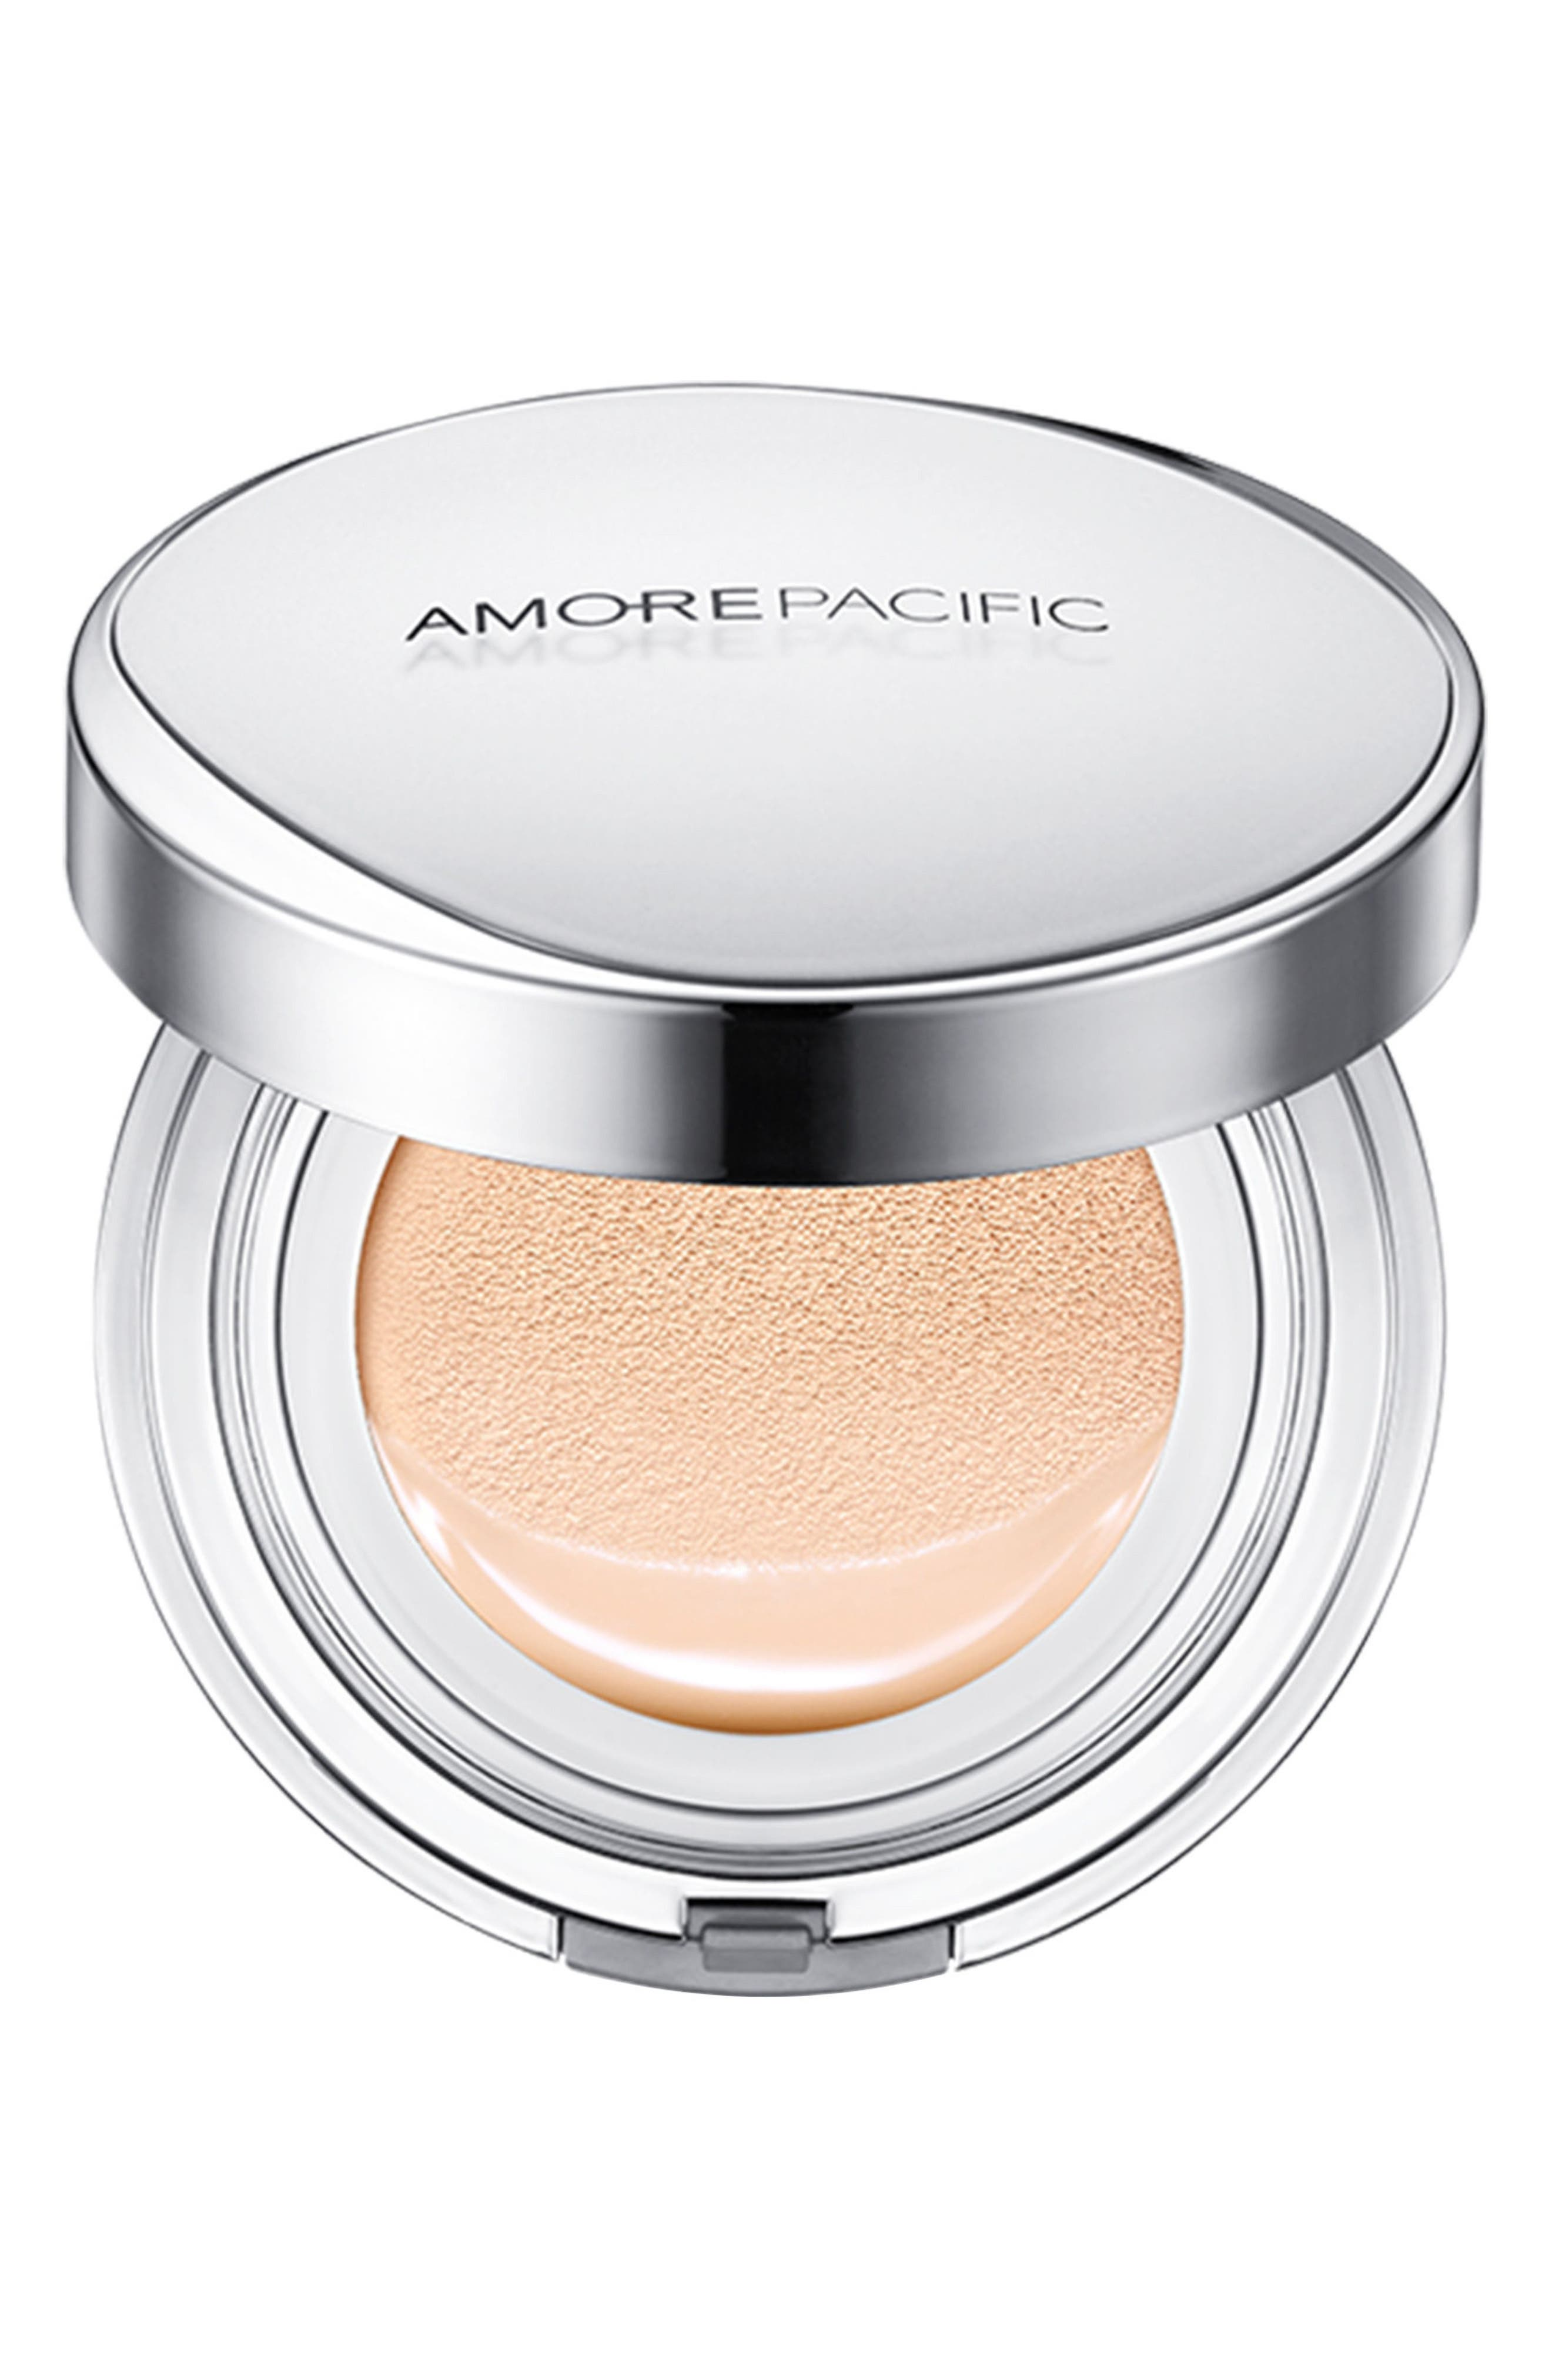 AMOREPACIFIC 'Color Control' Cushion Compact Broad Spectrum SPF 50, Main, color, 106 - MEDIUM PINK